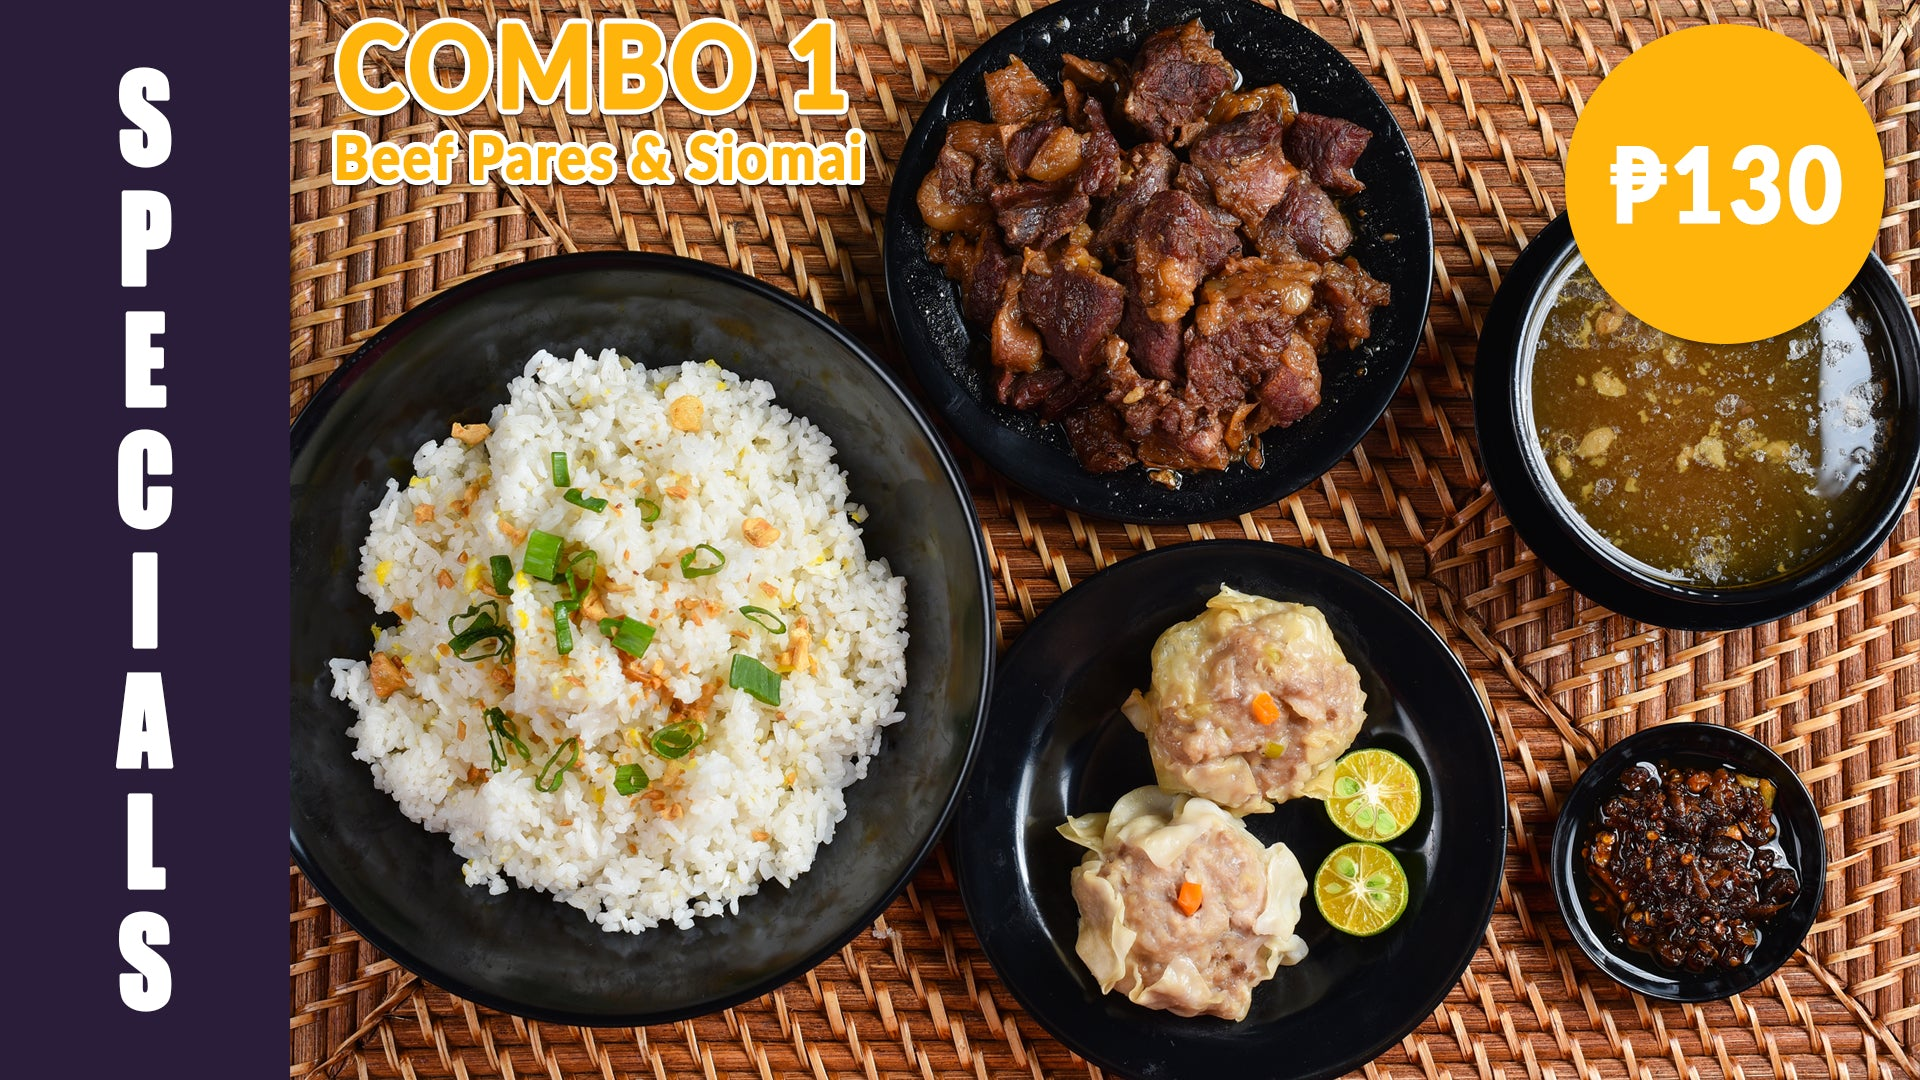 Cocoy's Combo 1 Beef Pares + 2pcs Pork Siomai | Affinity Games